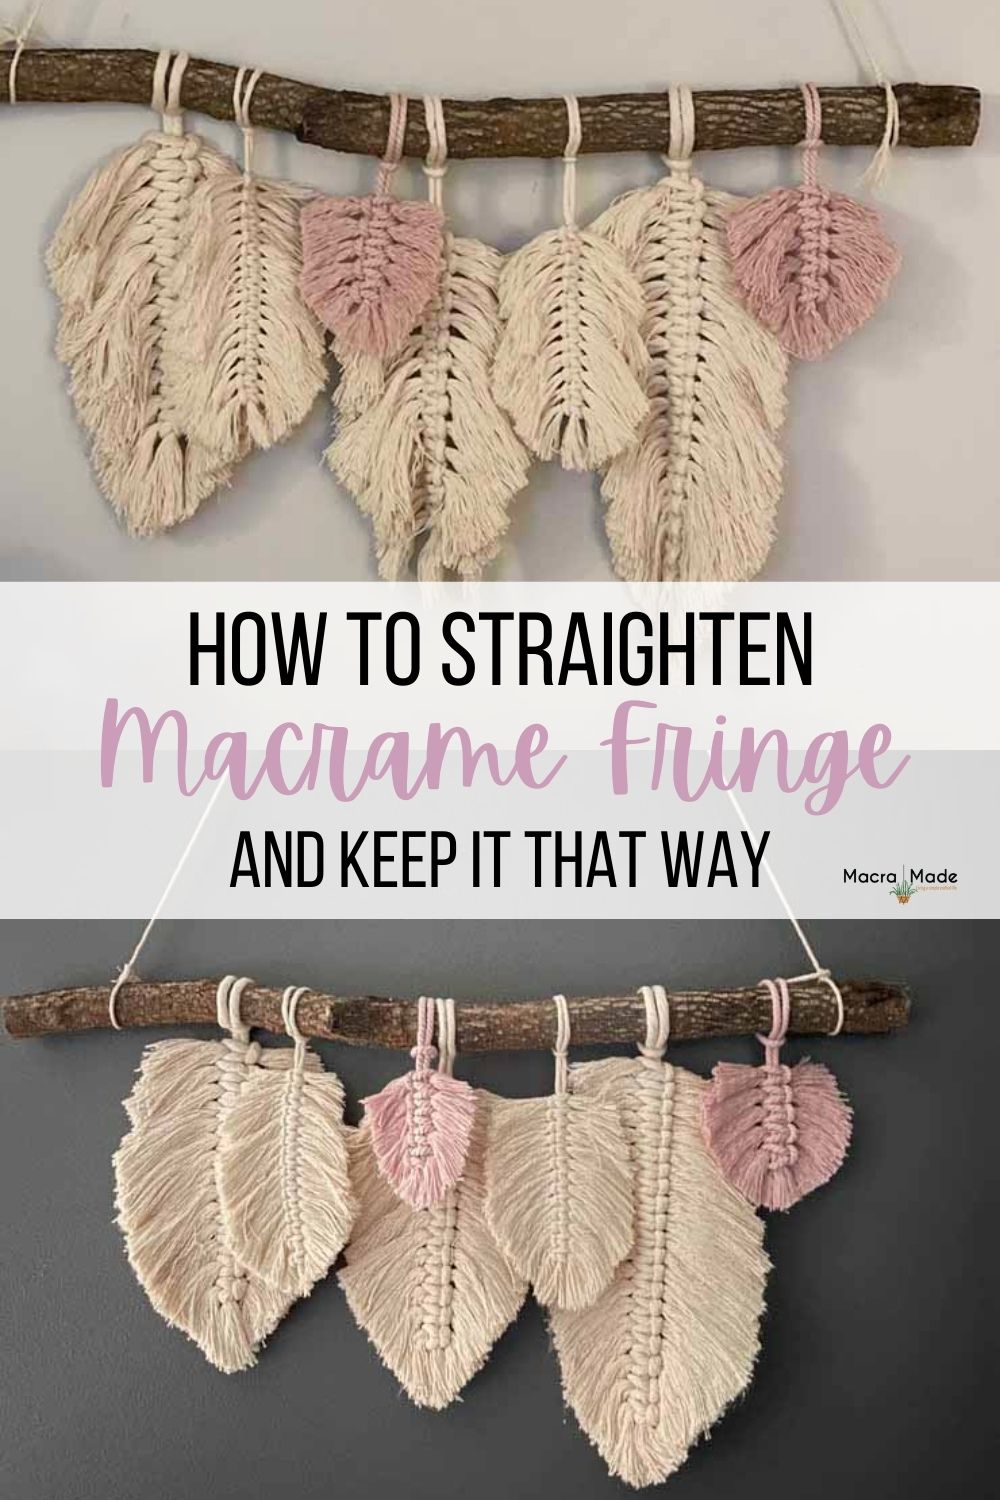 before and after of feathers with text How to Straighten Macrame Fringe and keep it that way